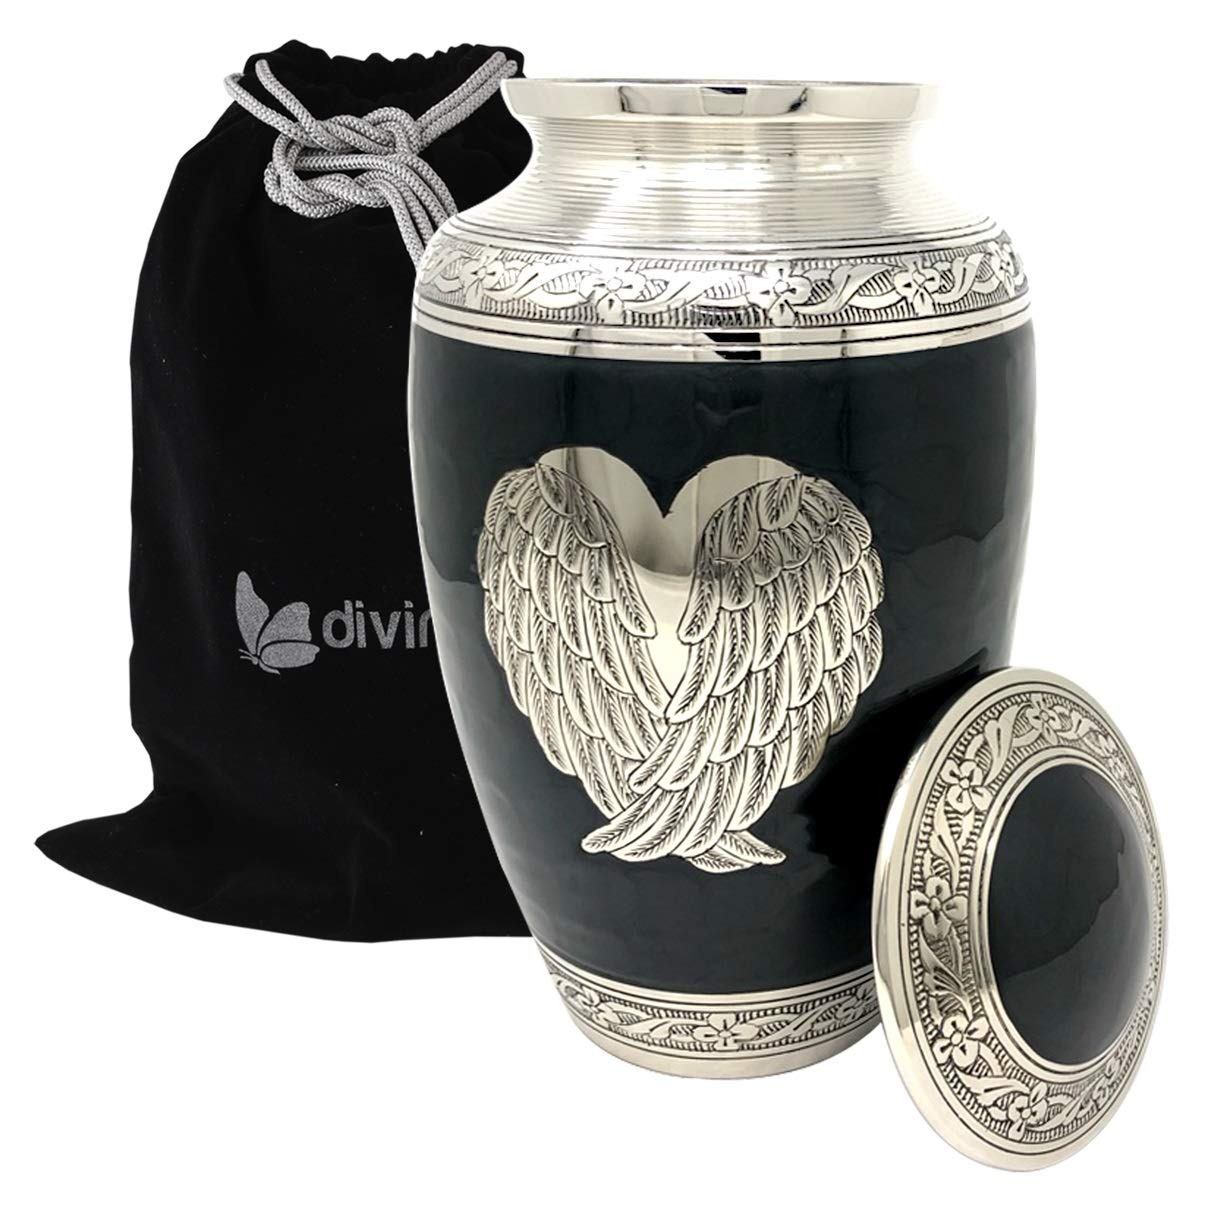 Loving Angel Wings Cremation Urn – Silver Angel Wing Urn – Solid Brass Large Angel Wings Urn for Human Ashes – Handcrafted Adult Funeral Urn with Free Bag Black Adult